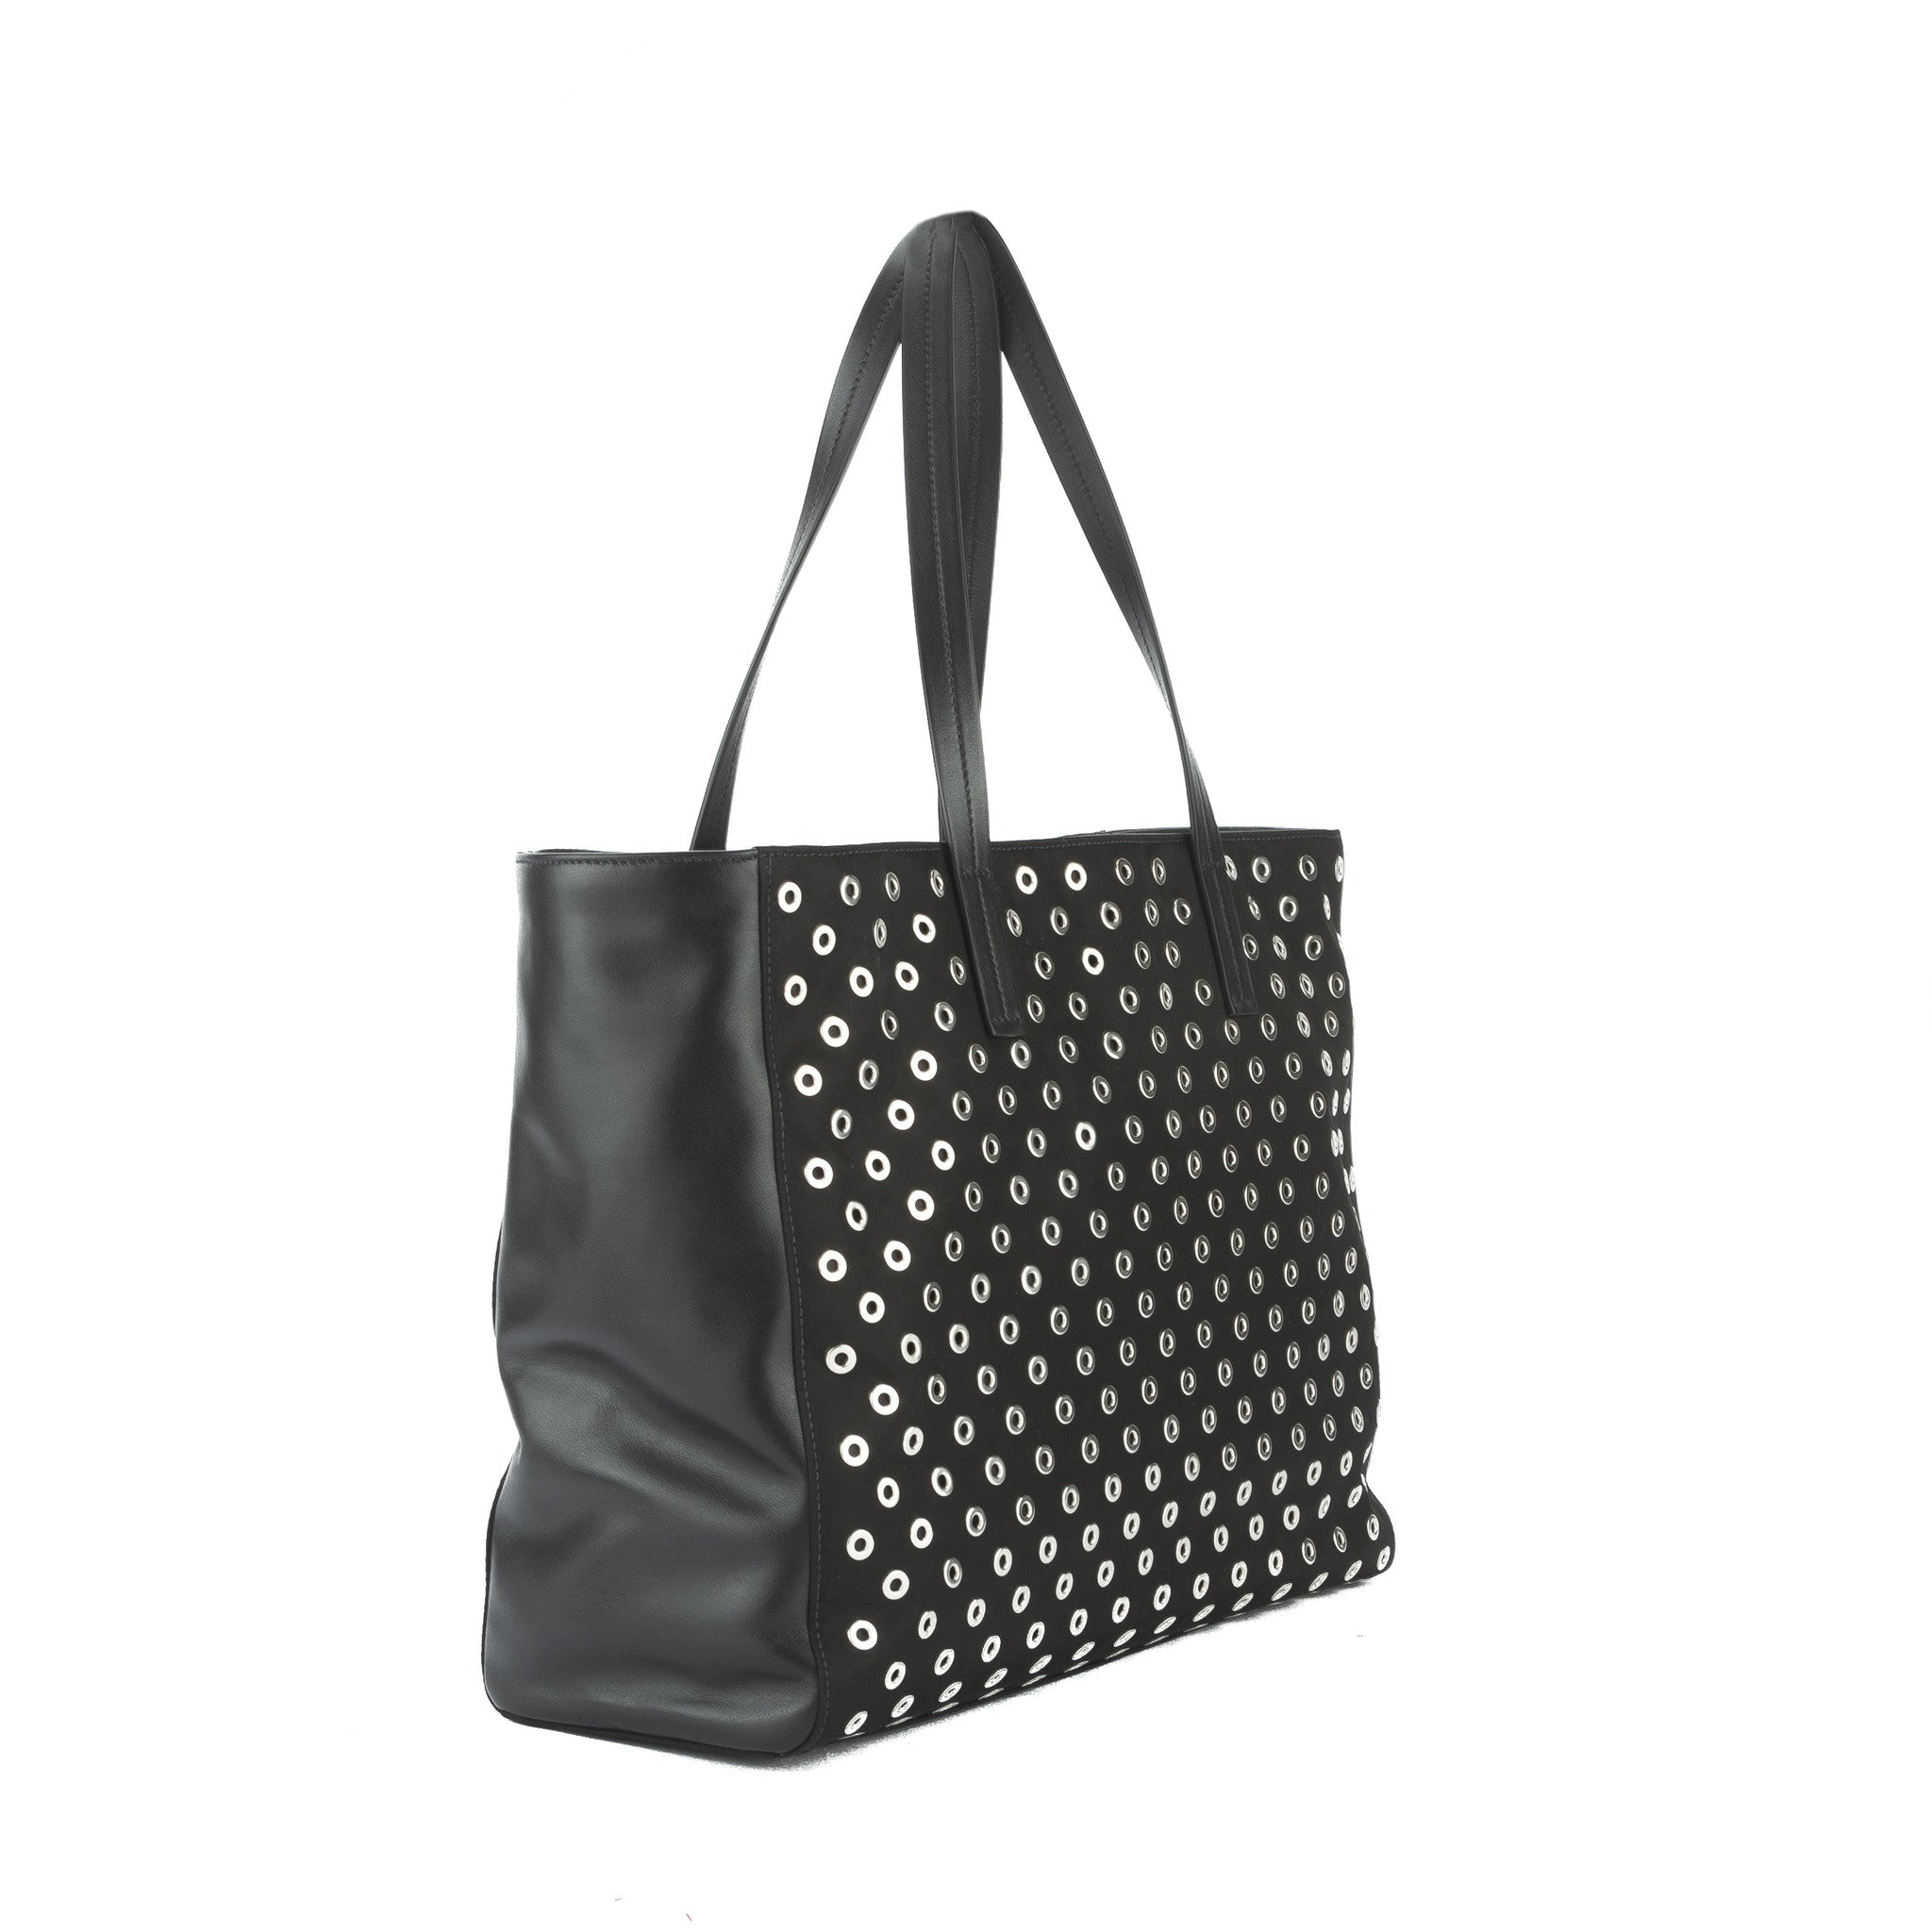 80878b269439 Prada Black Nylon and Leather Tessuto Grommets Tote Bag (New with Tags -  3031002 | LuxeDH